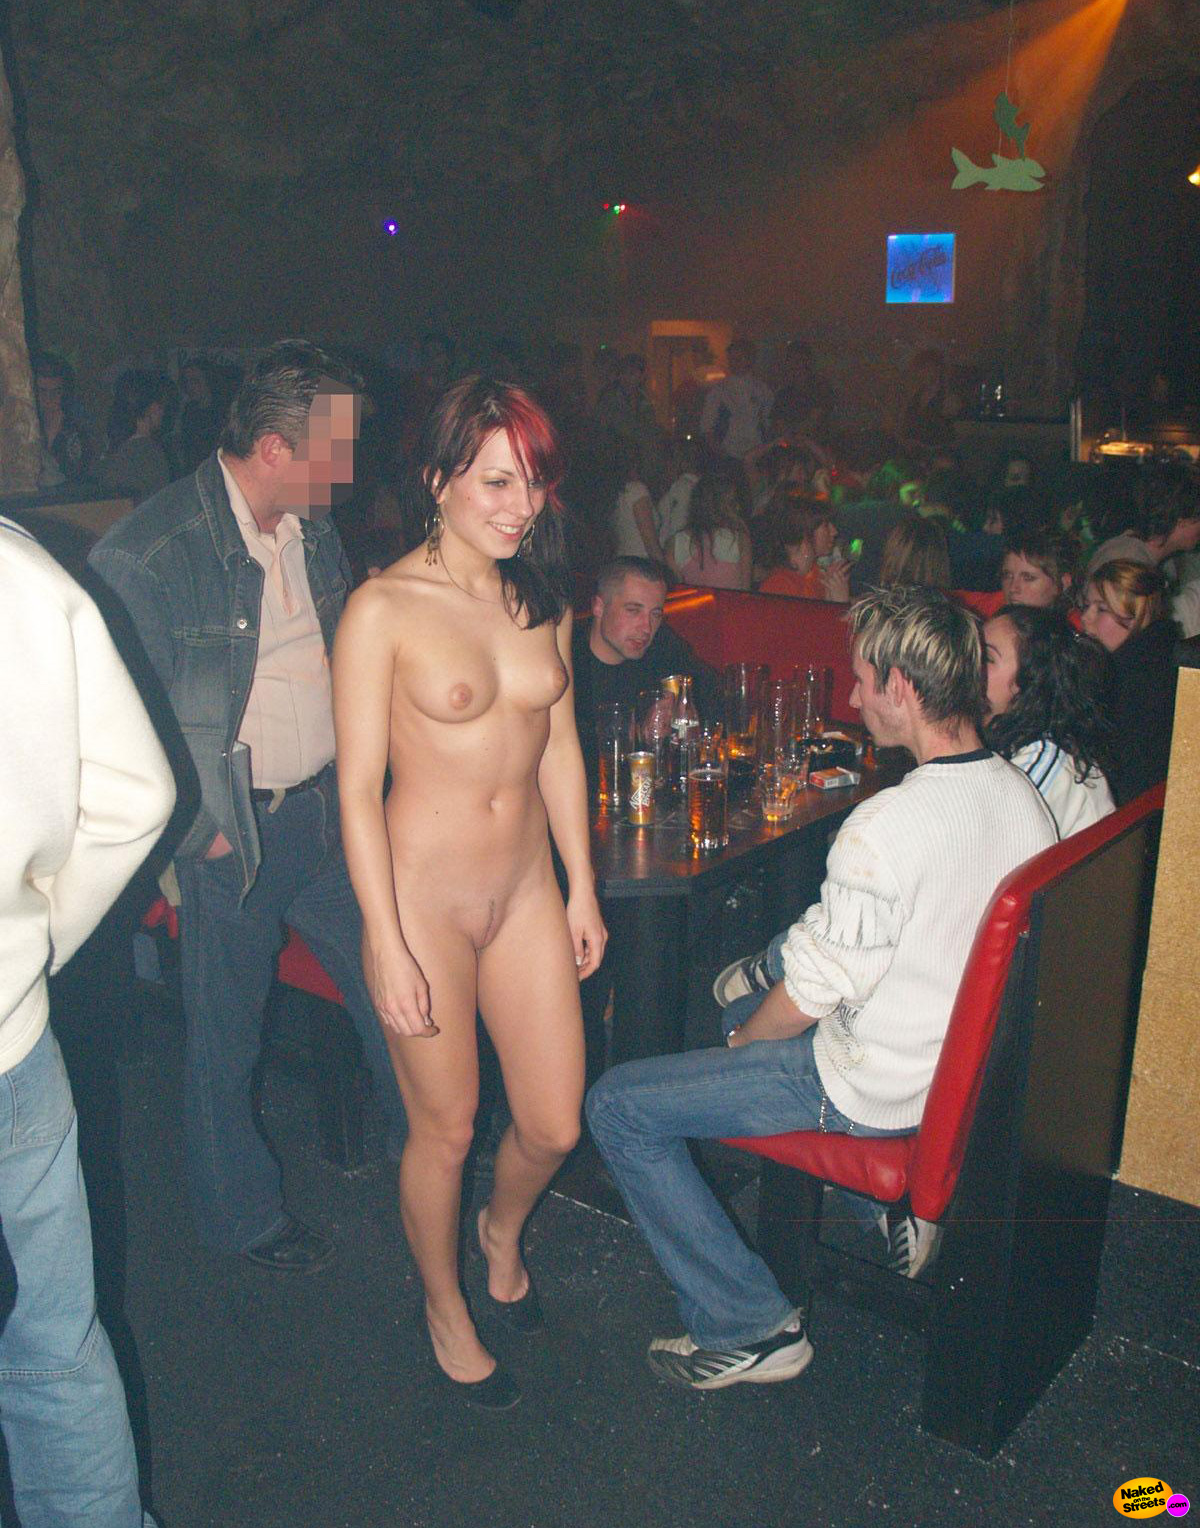 nude-bar-girls-wallpaper-full-hd